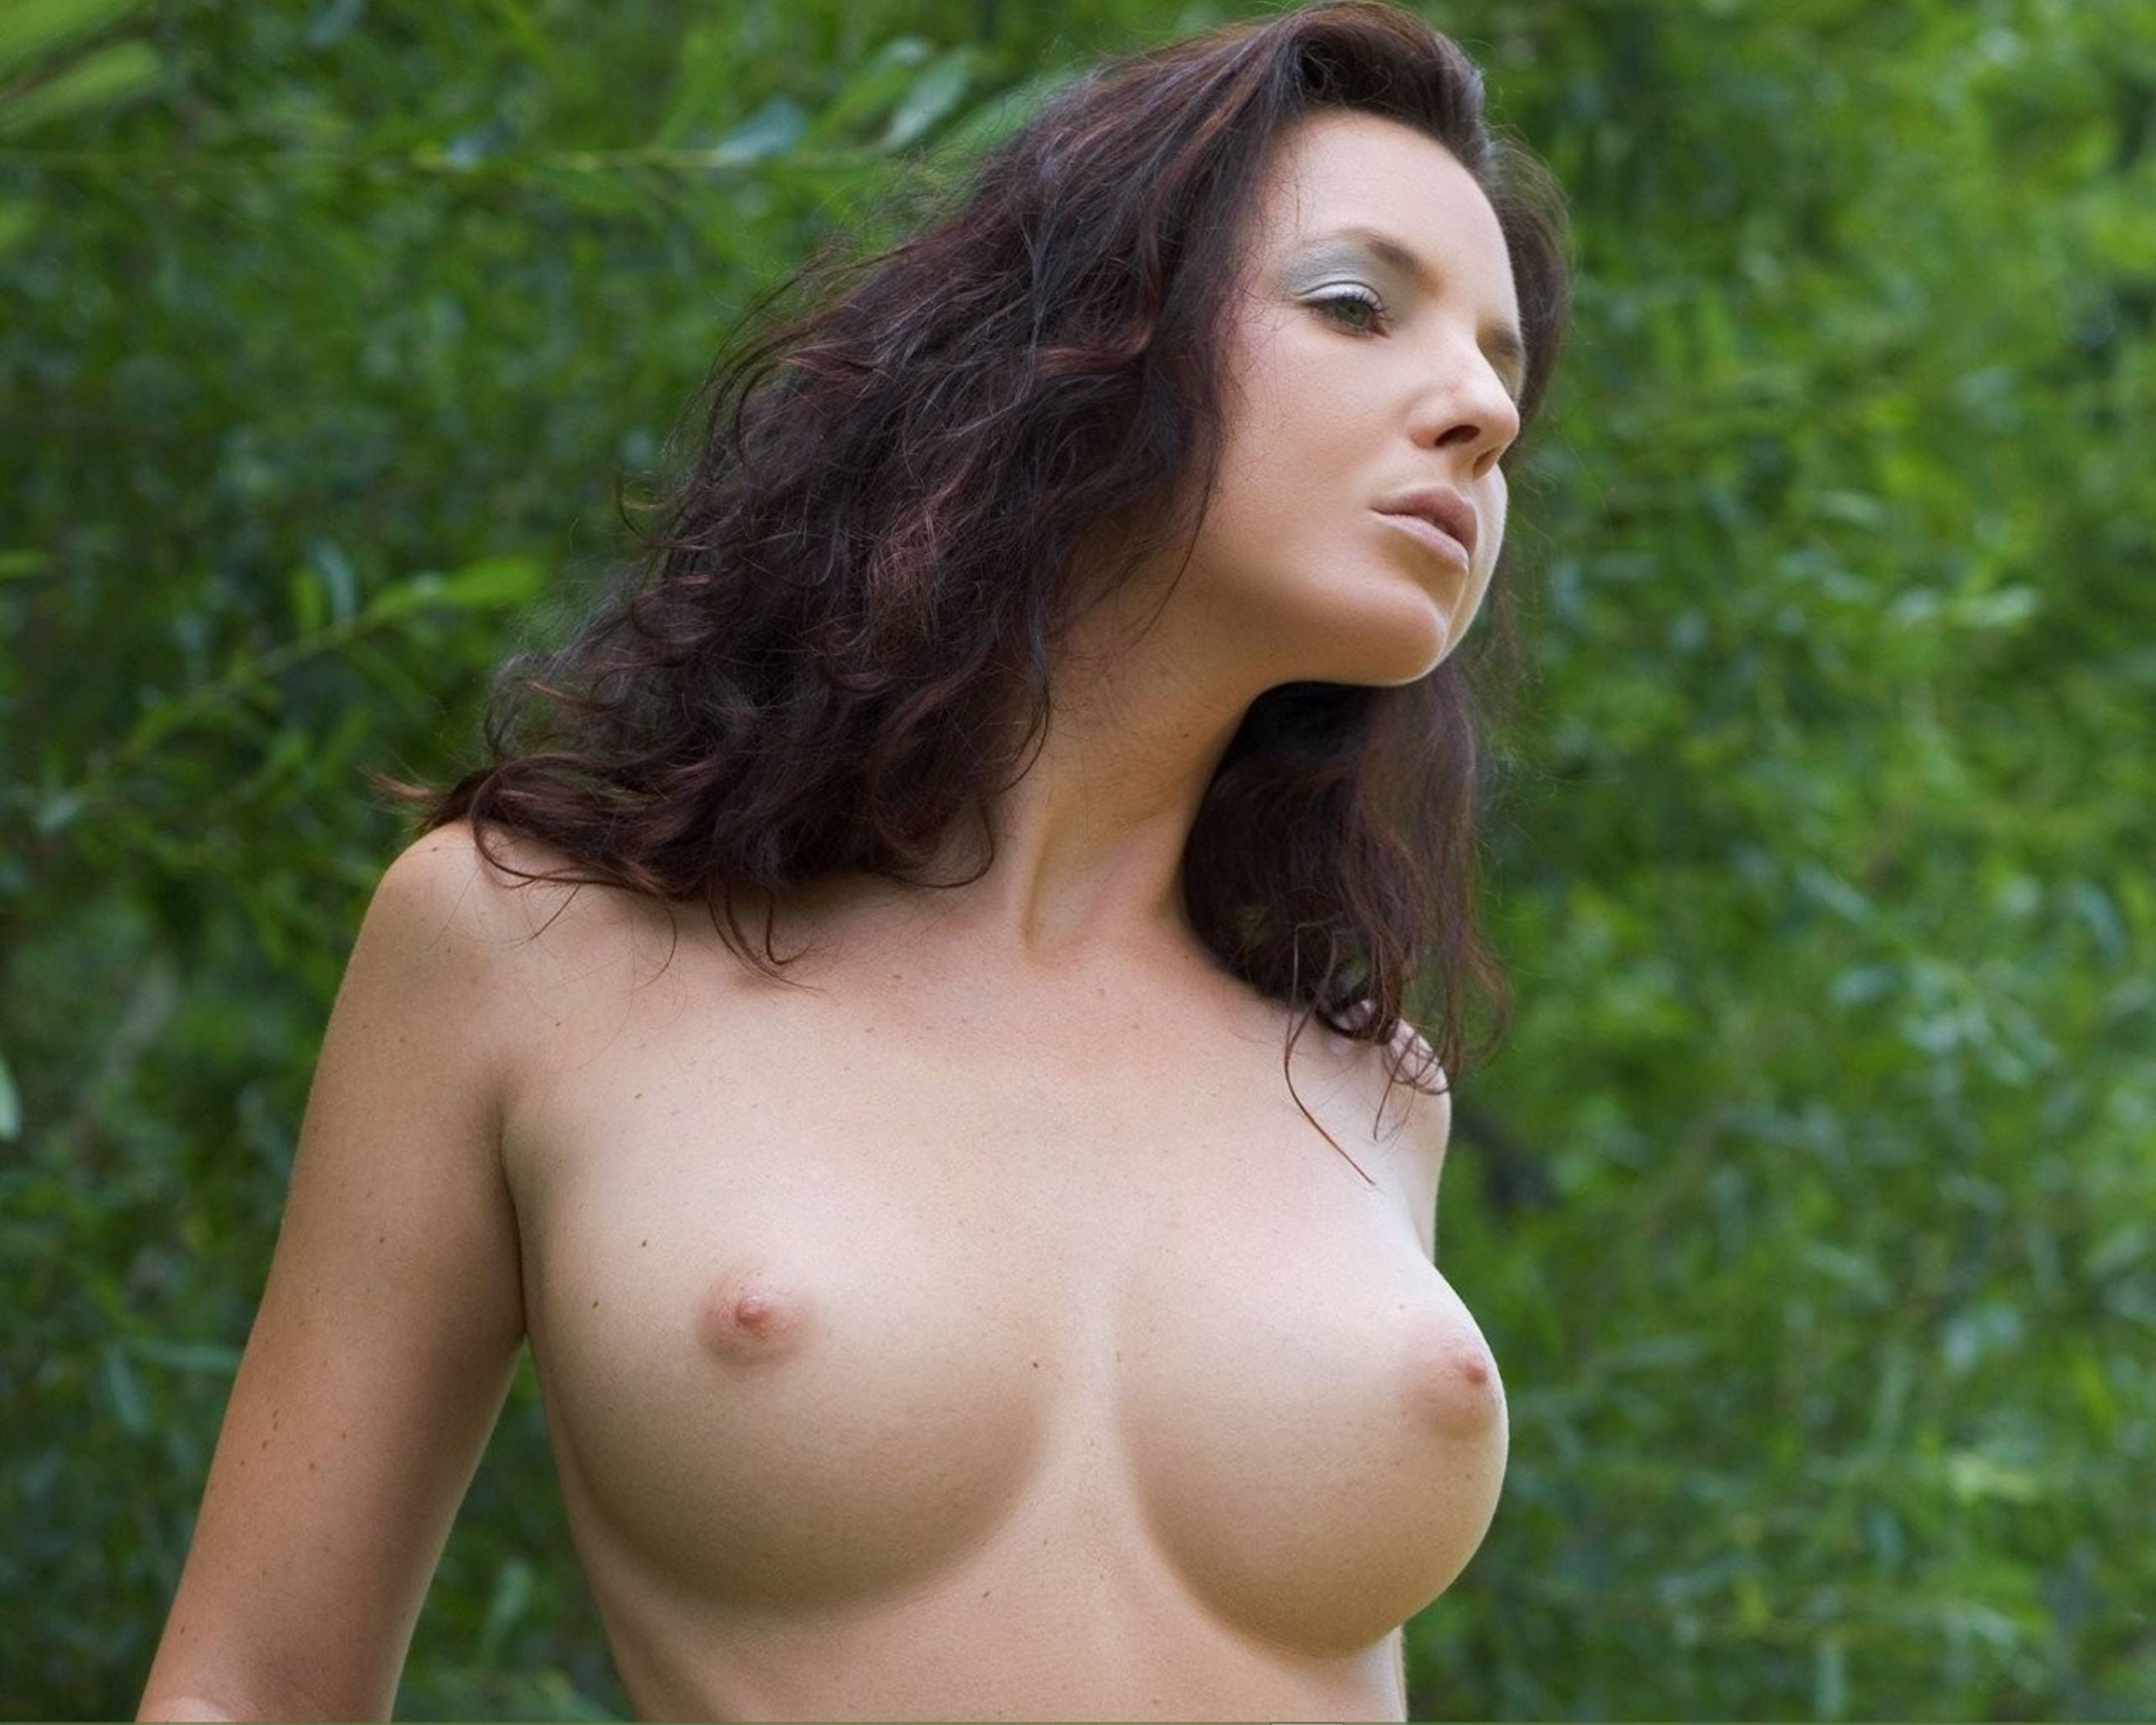 Brunette firm breasts